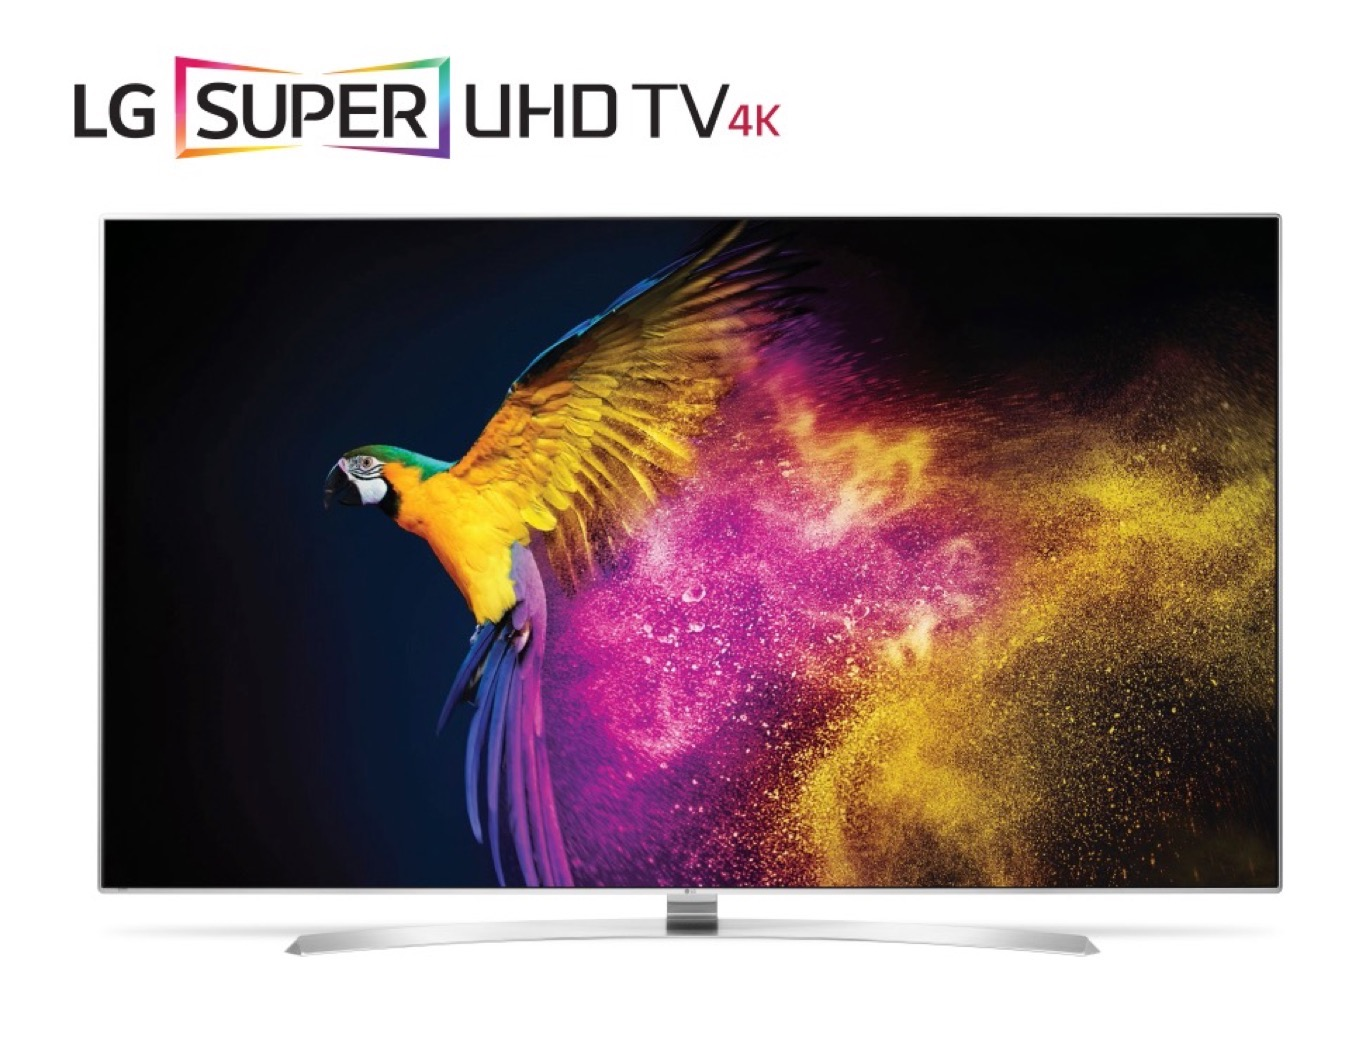 LG Super UHD 4K TV - Press Release: Experience the best home entertainment with  LG's 2016 TV line-up